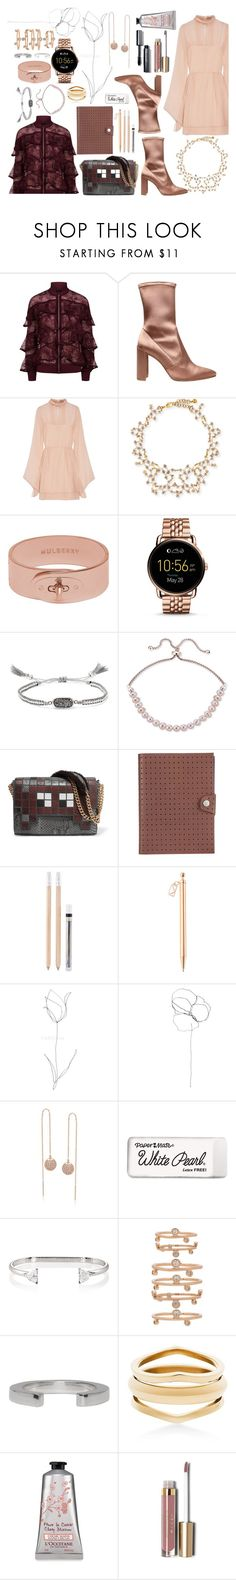 """Untitled #869"" by adda21 ❤ liked on Polyvore featuring Elie Saab, Stuart Weitzman, Emilio Pucci, Lulu Frost, Mulberry, FOSSIL, Chan Luu, Giani Bernini, Anya Hindmarch and Marni"